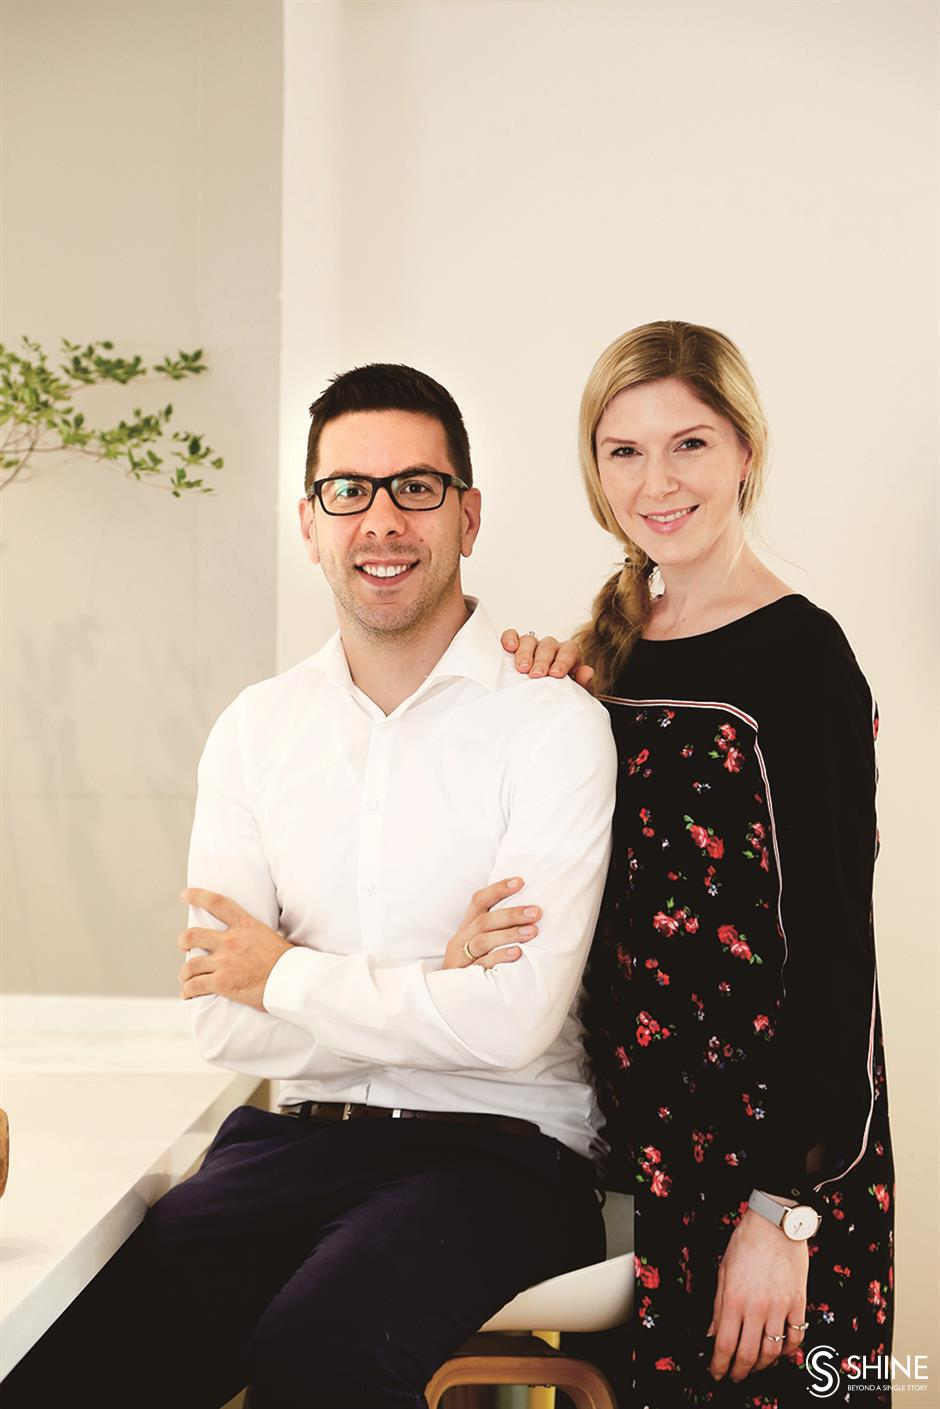 Couple create unique personal space in rented unit